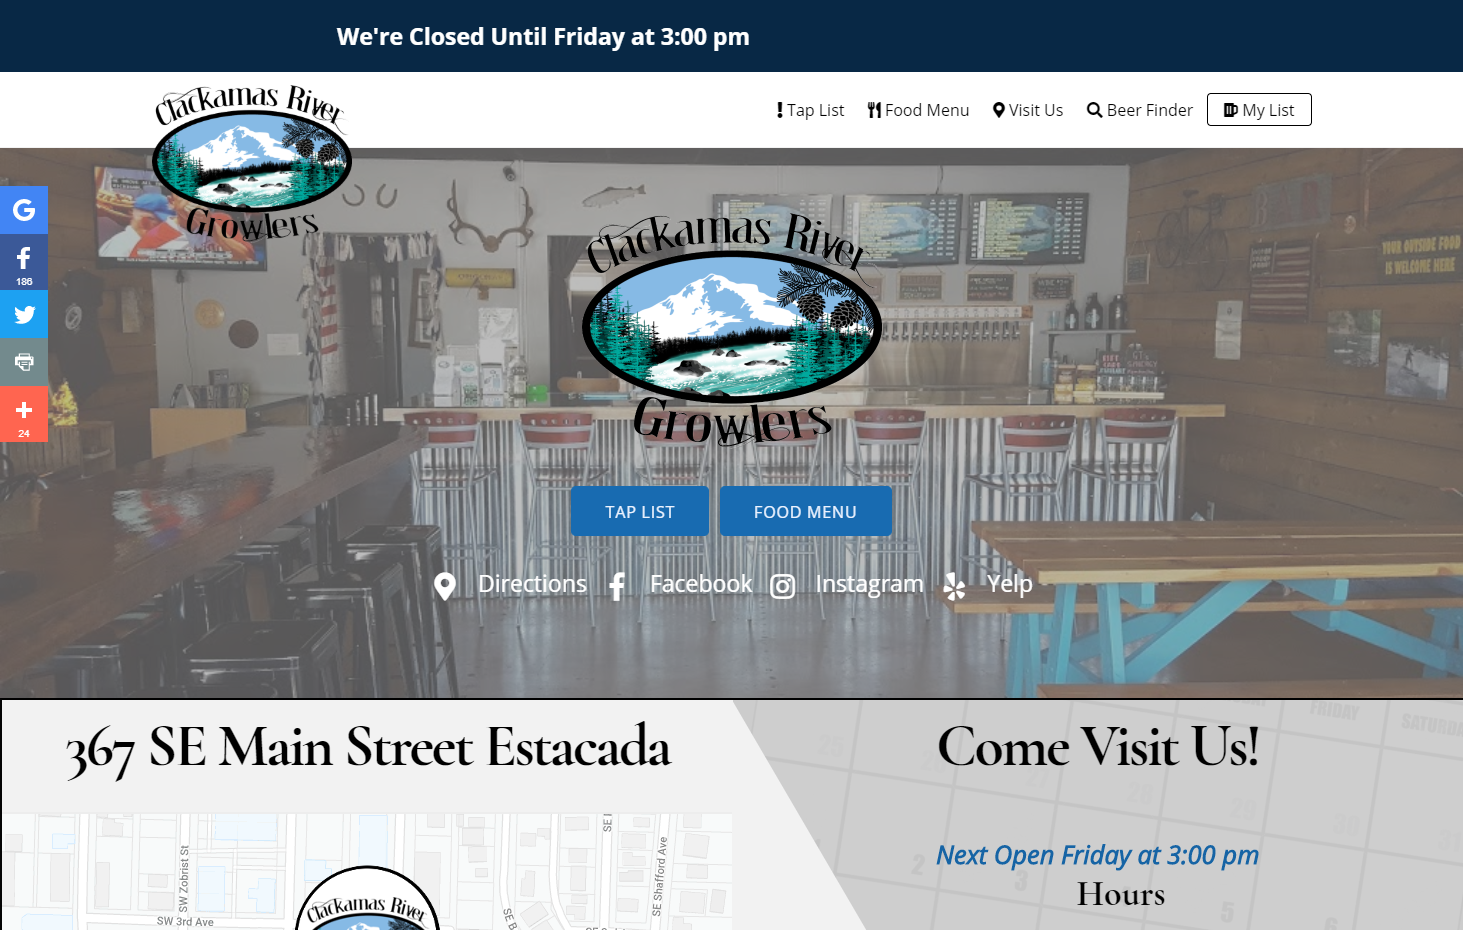 Clackamas River Growlers - 32 beer cider choices on tap in Estacada